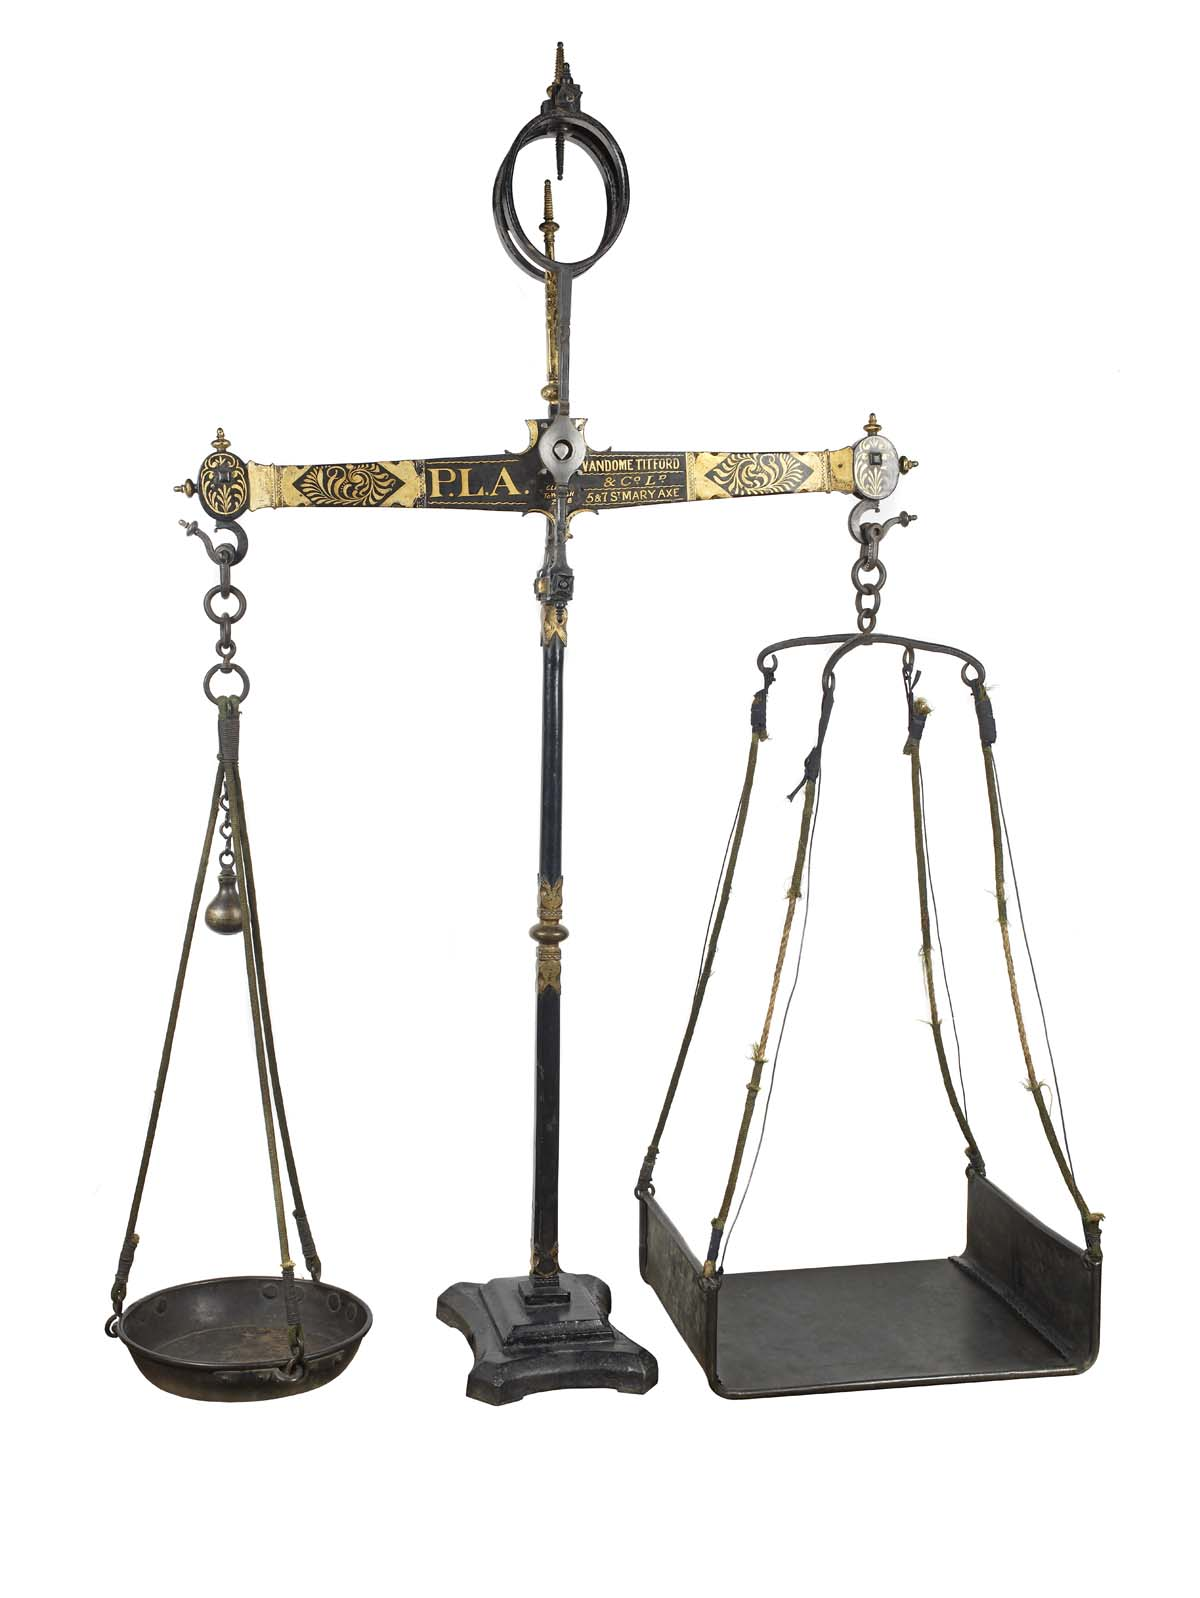 photo of a pair of weighing scales